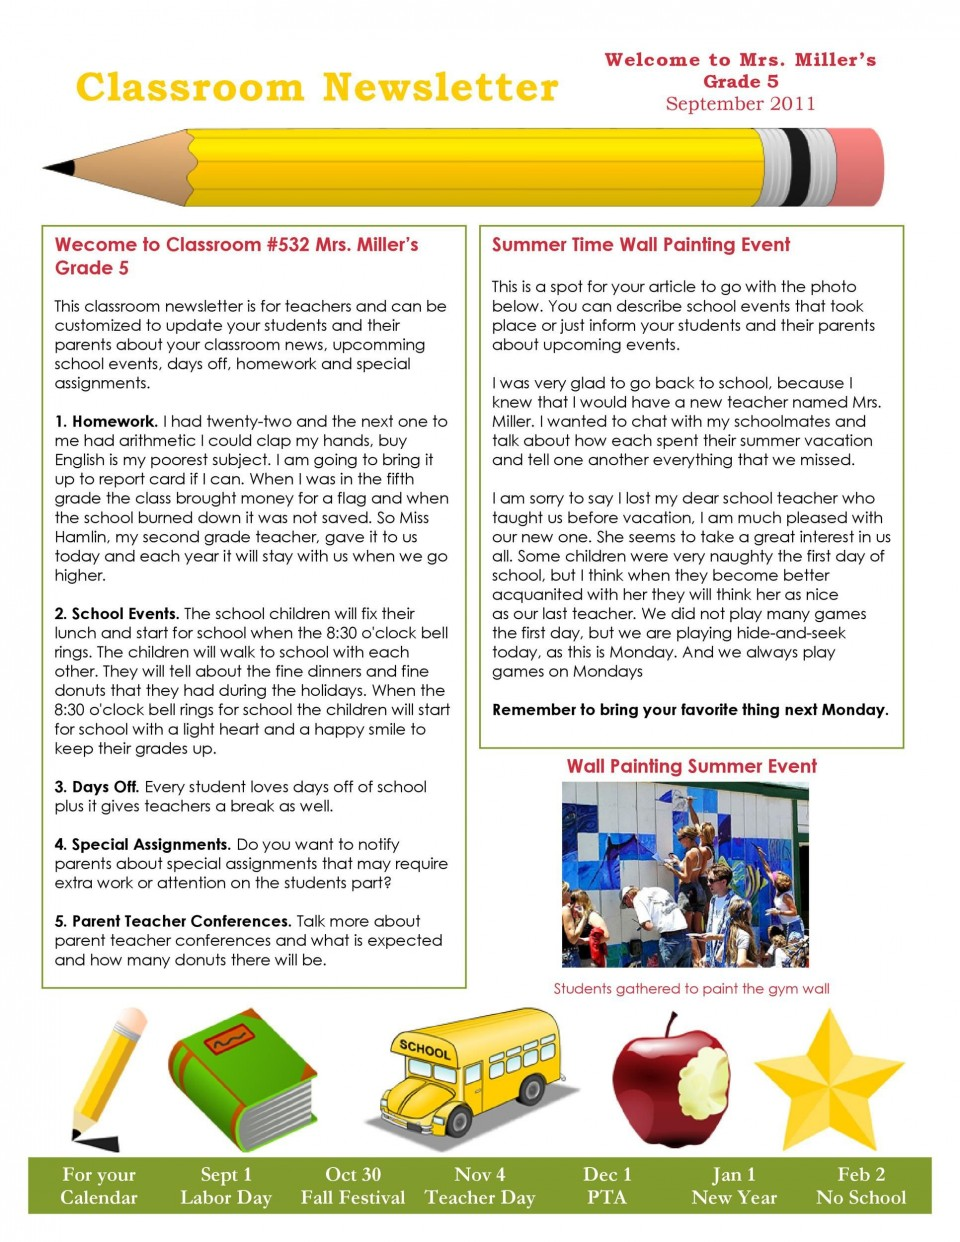 006 Fantastic School Newsletter Template Free High Def  Publisher Editable Counselor960